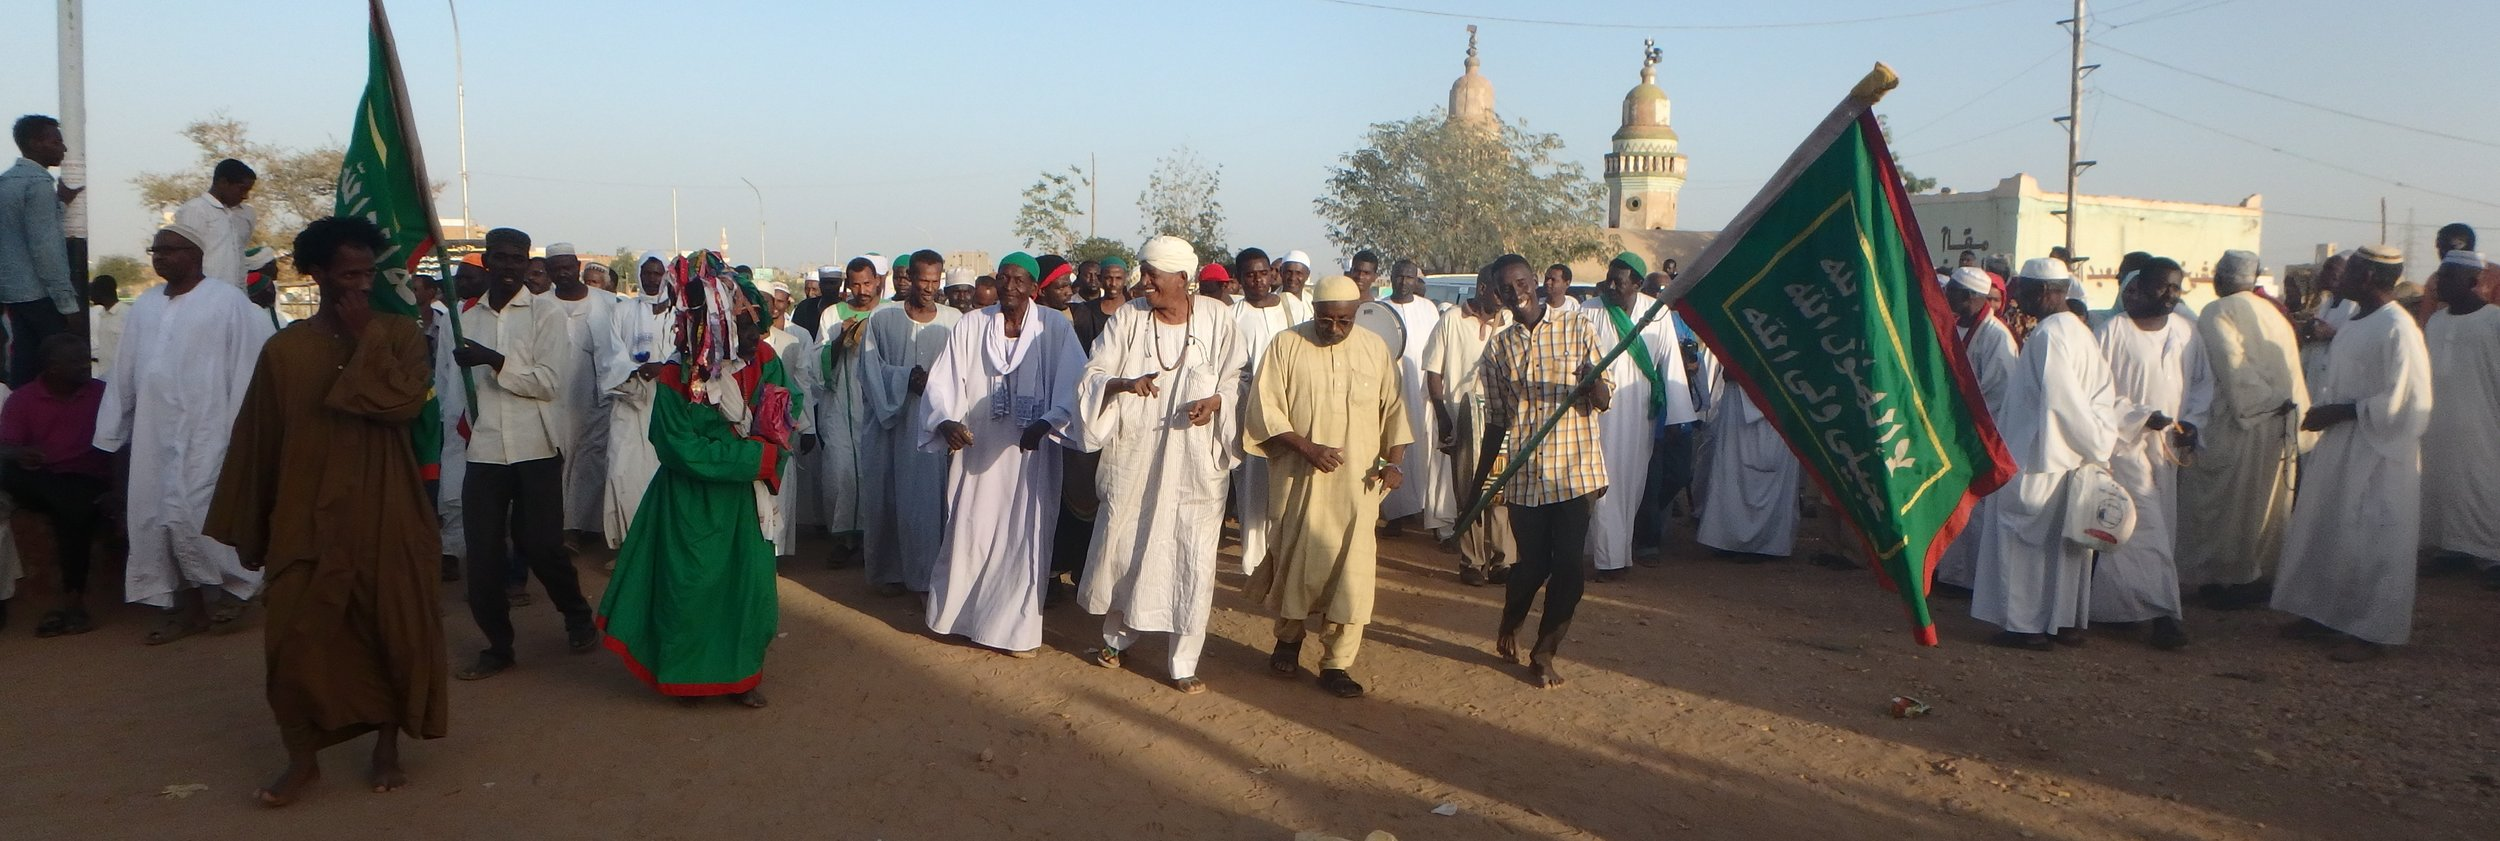 Back in Omdurman, Khartoum, we catch a soufi  dhikr  (ceremony of chanting, dancing, and trance to focus on one's connection to God)   in the Hamad el-Nil cemetery.